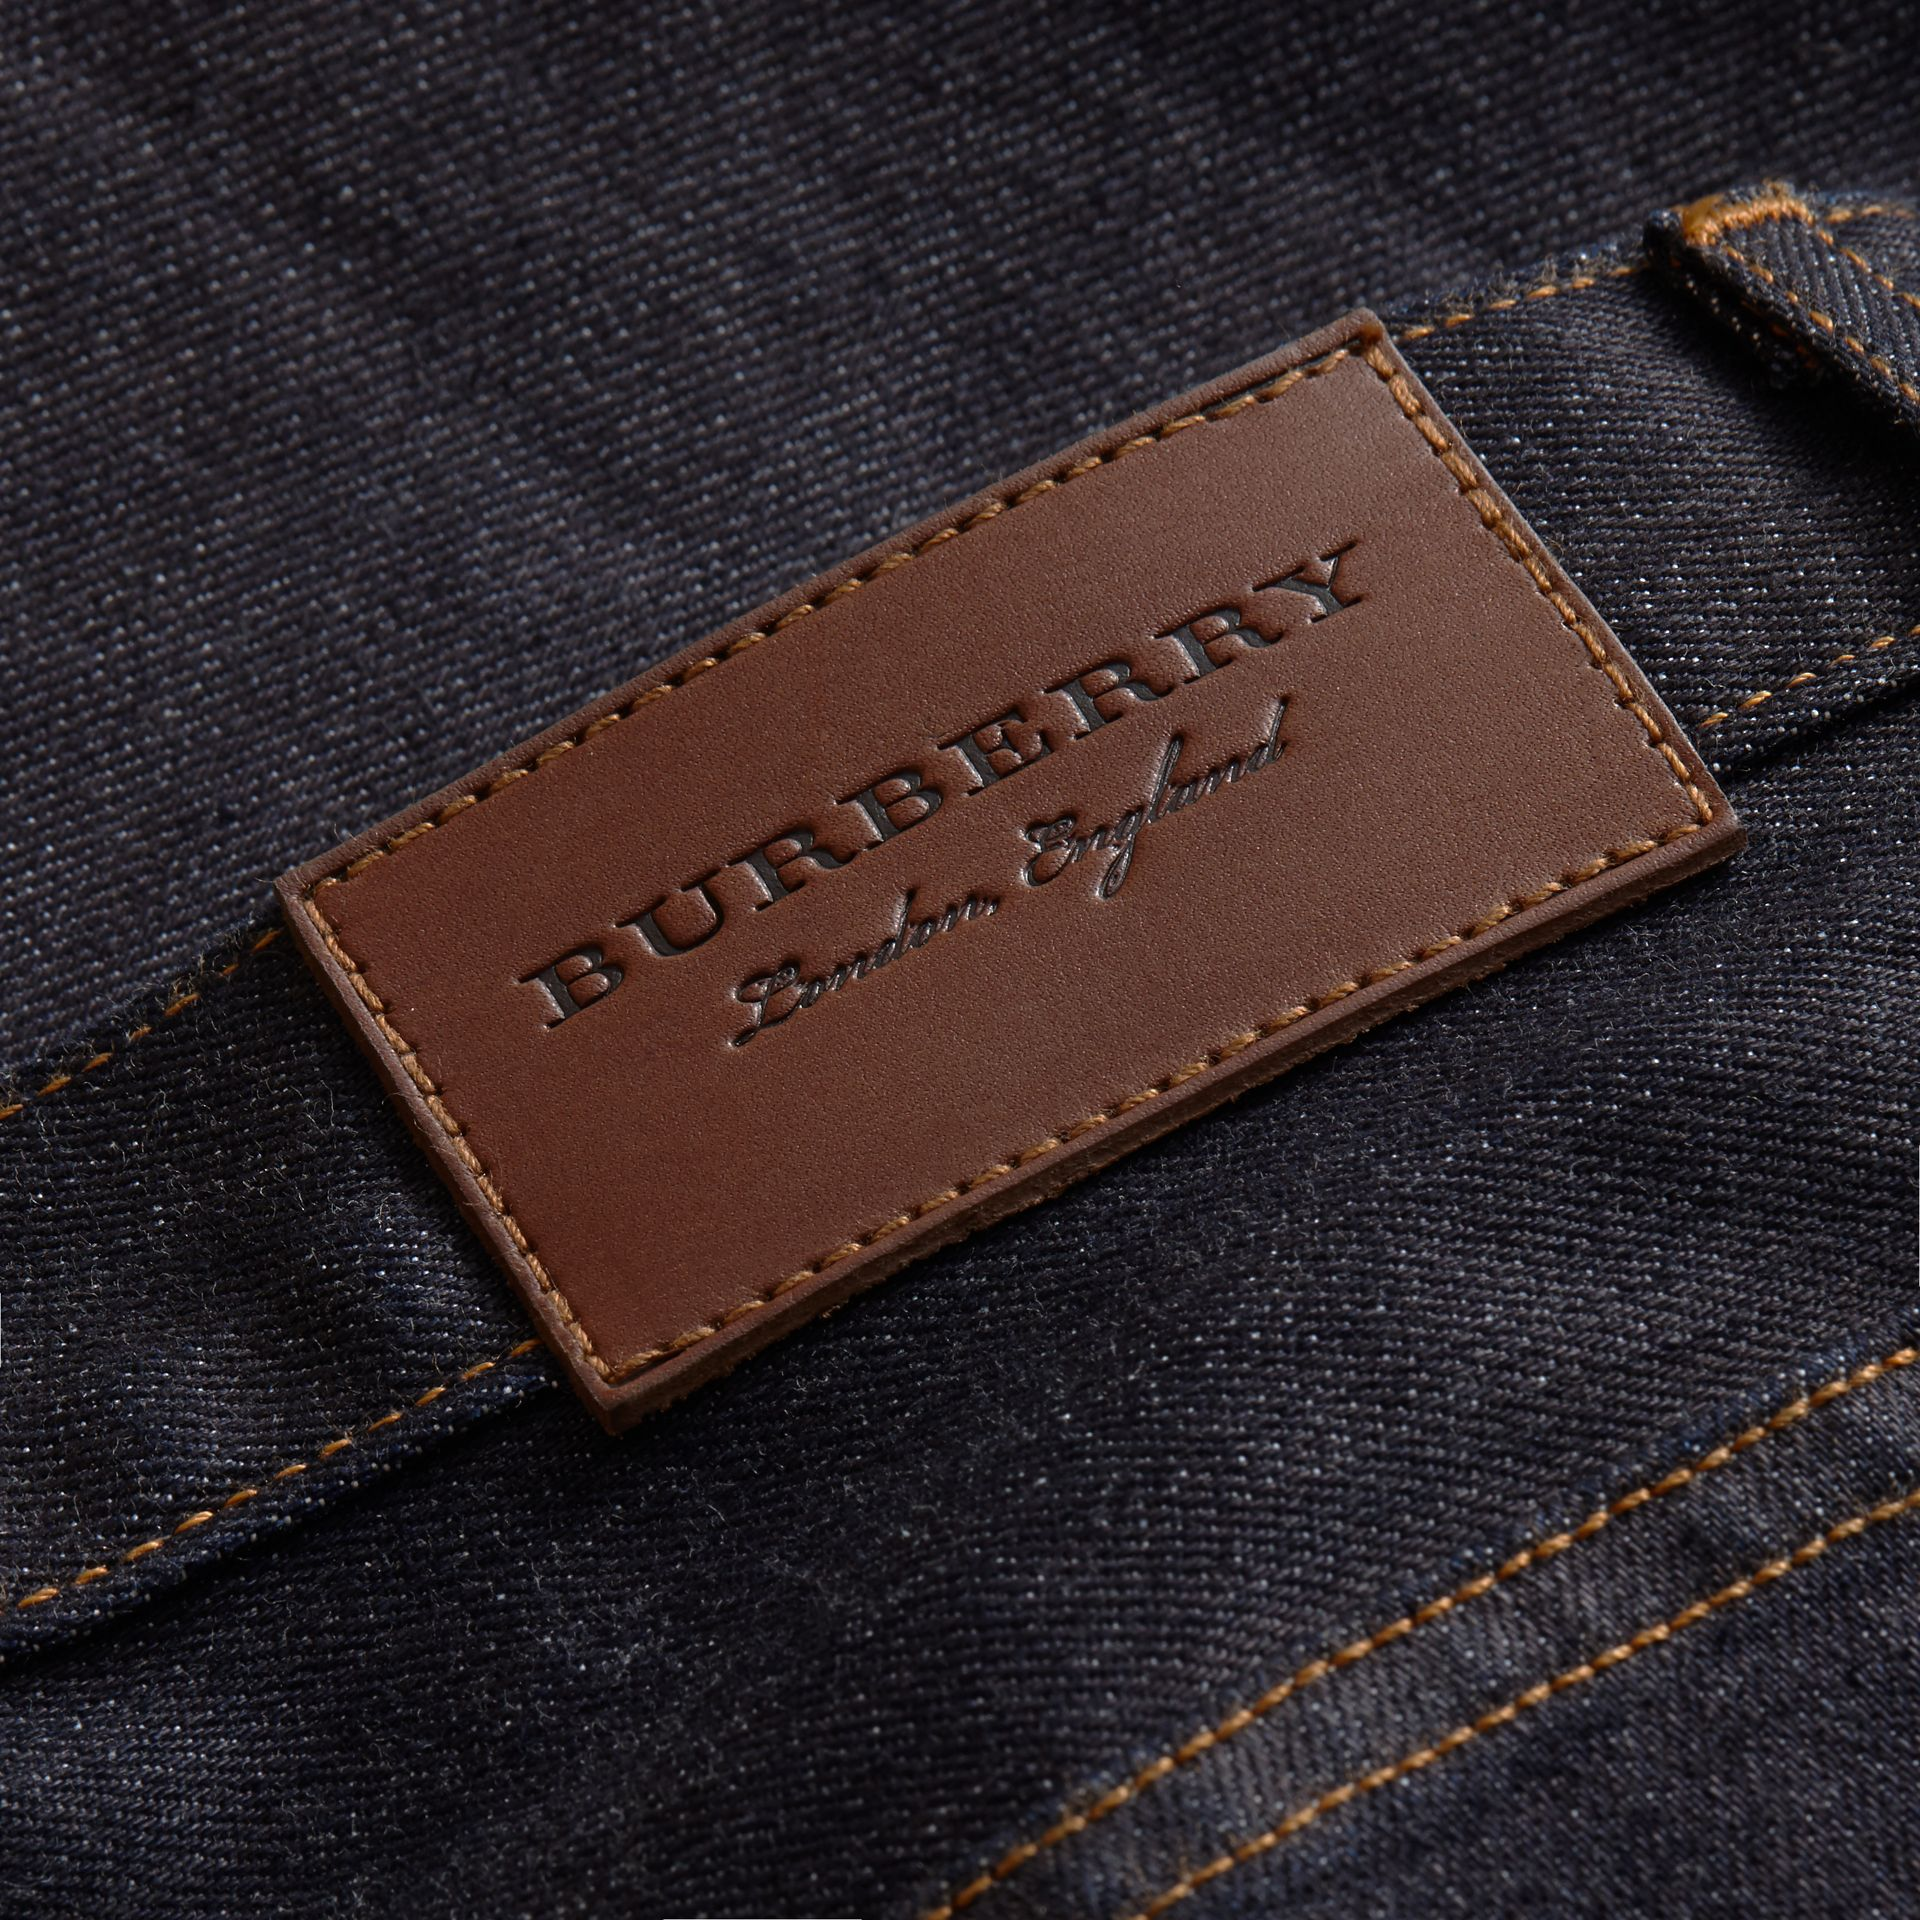 Relaxed Fit Comfort Stretch Indigo Japanese Denim Jeans in Dark - Men | Burberry - gallery image 2